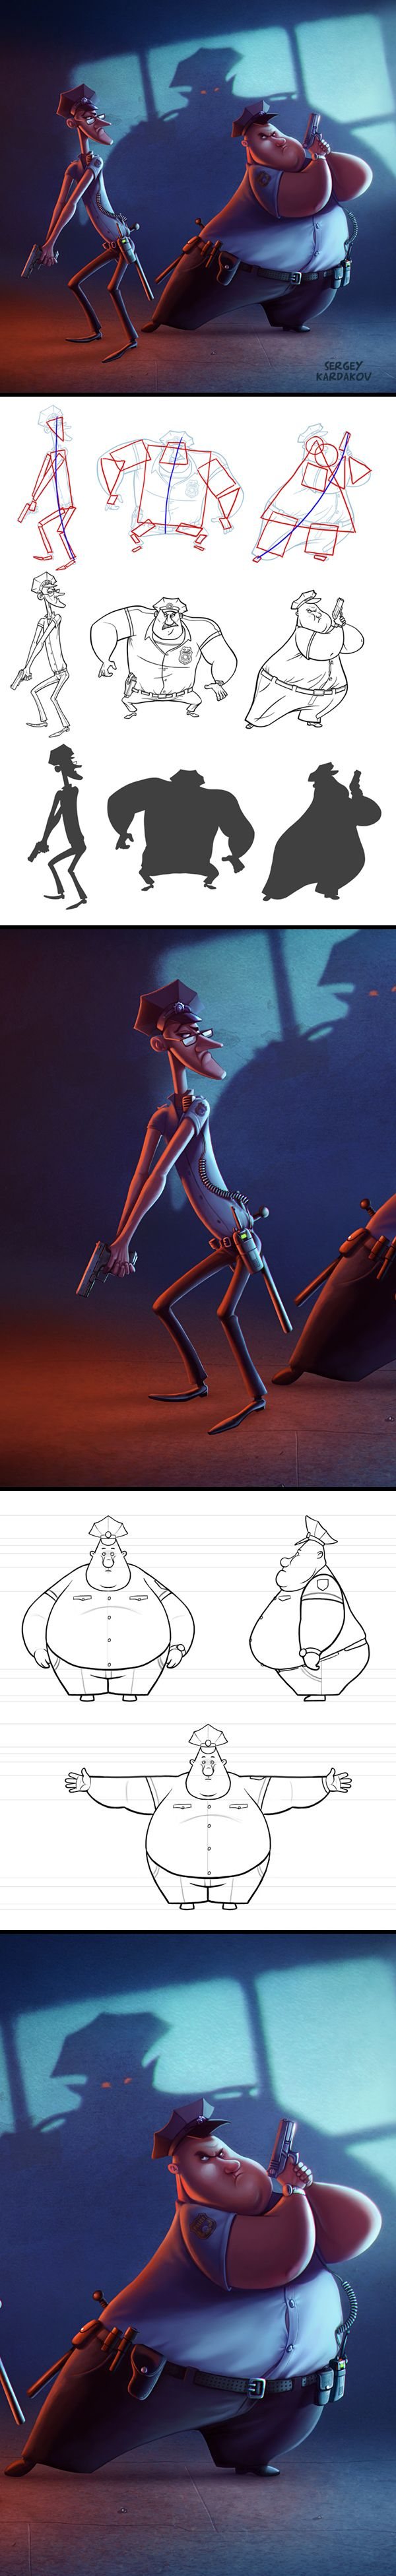 Illustration mix by Sergey Kardakov, via Behance